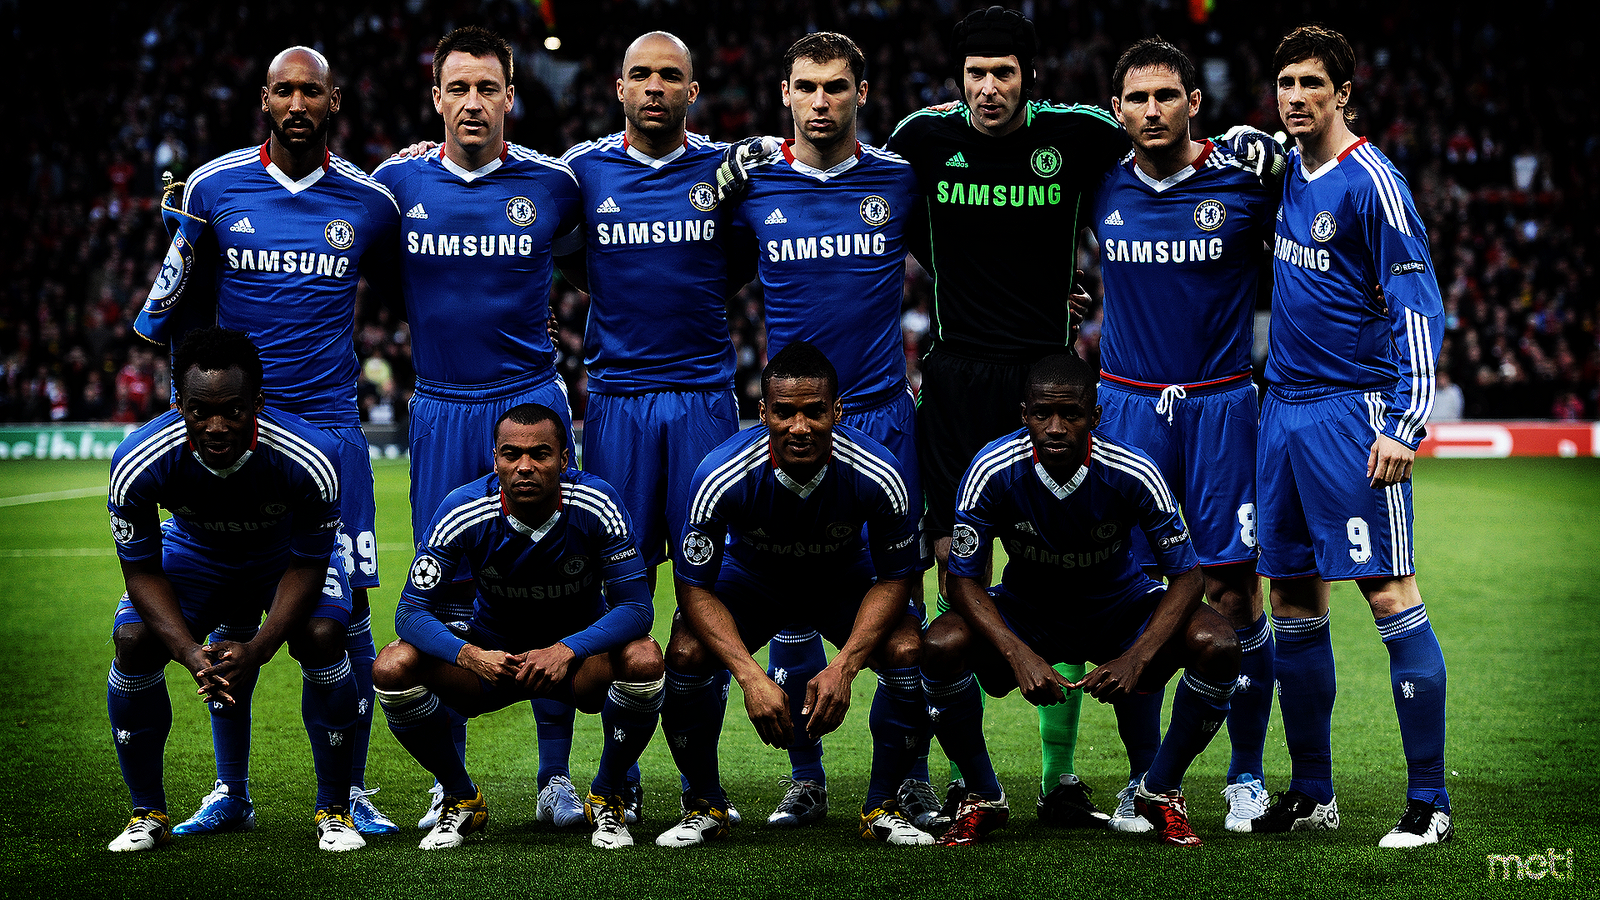 Football Wallpapers&Football-Avatars: Wallpaper-Chelsea.FC